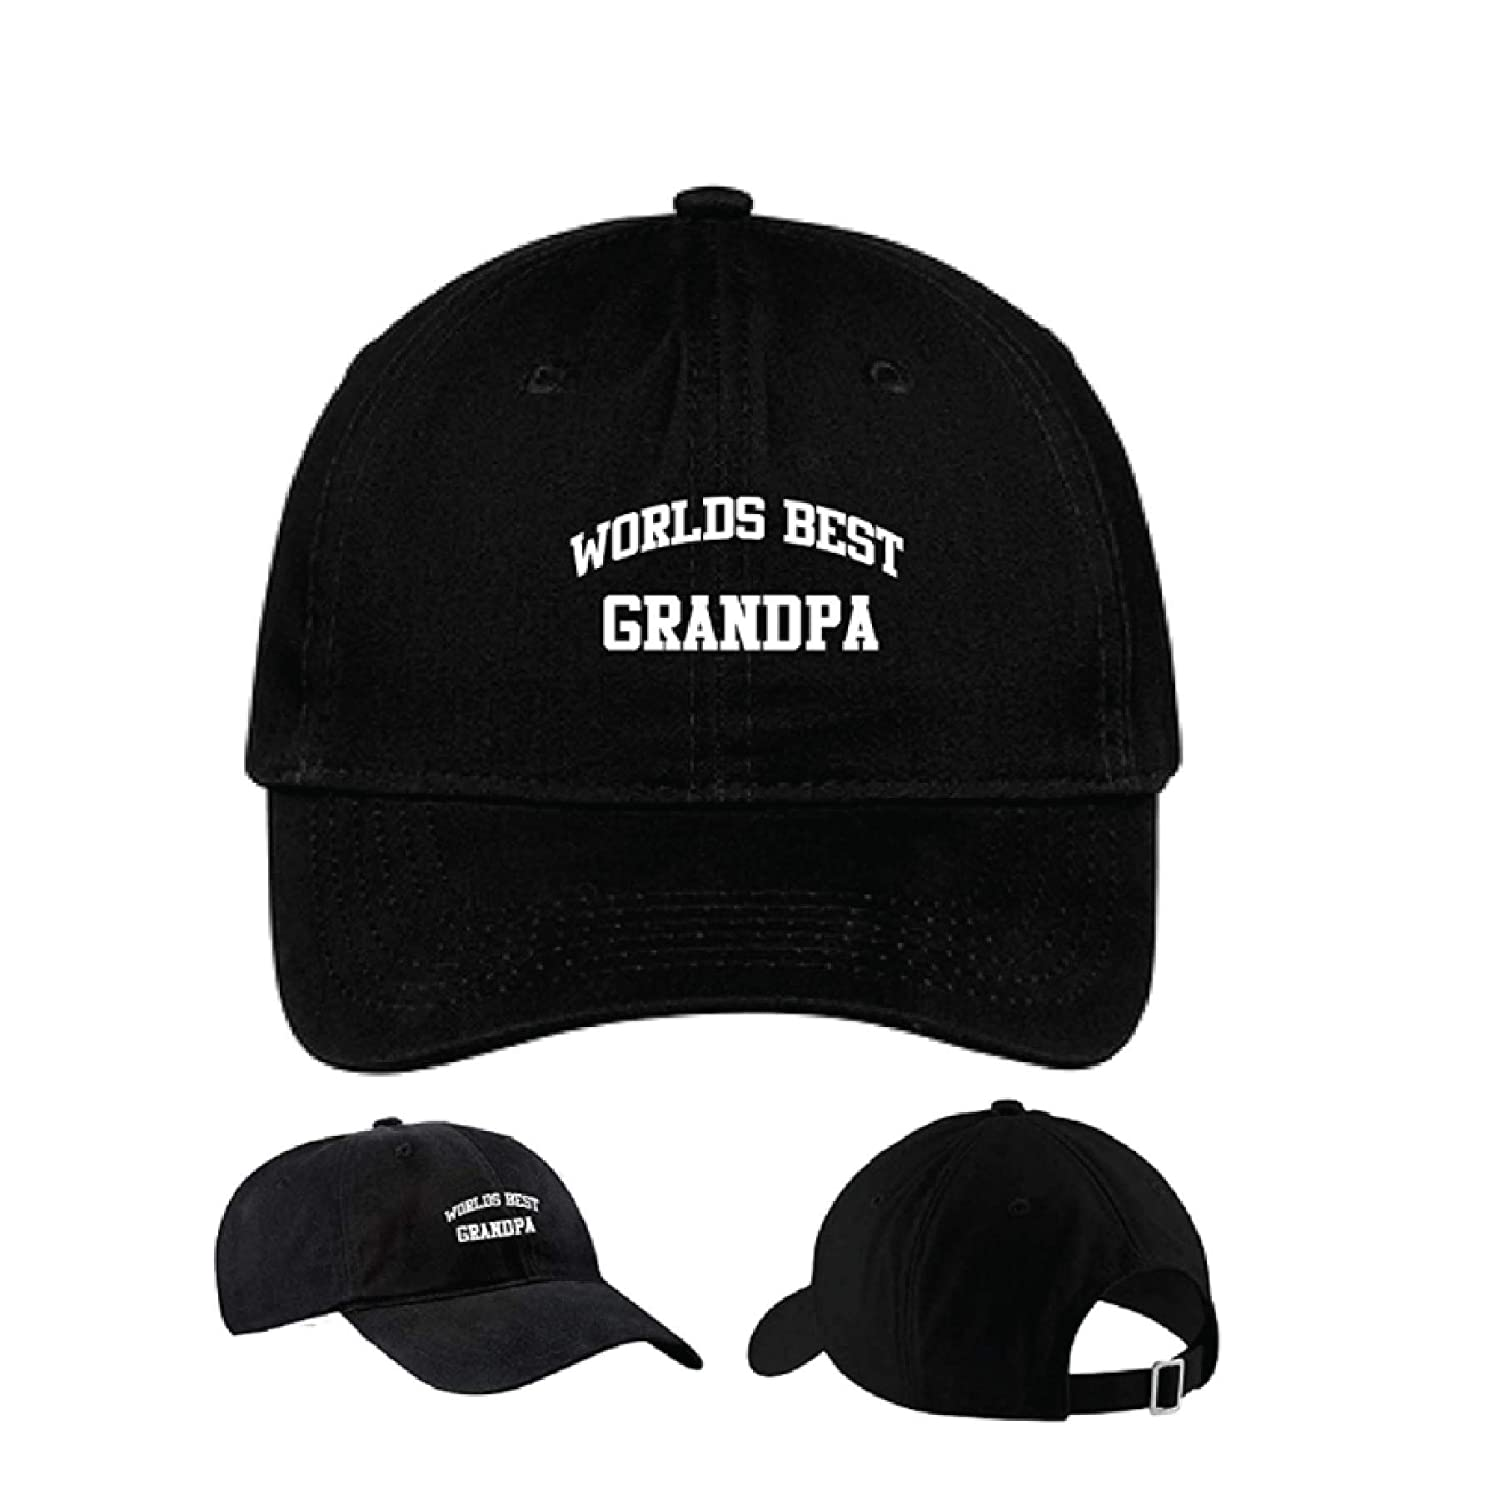 Embroidered Worlds Best Max 61% OFF Shipping included Grandpa Gr Hat Cap